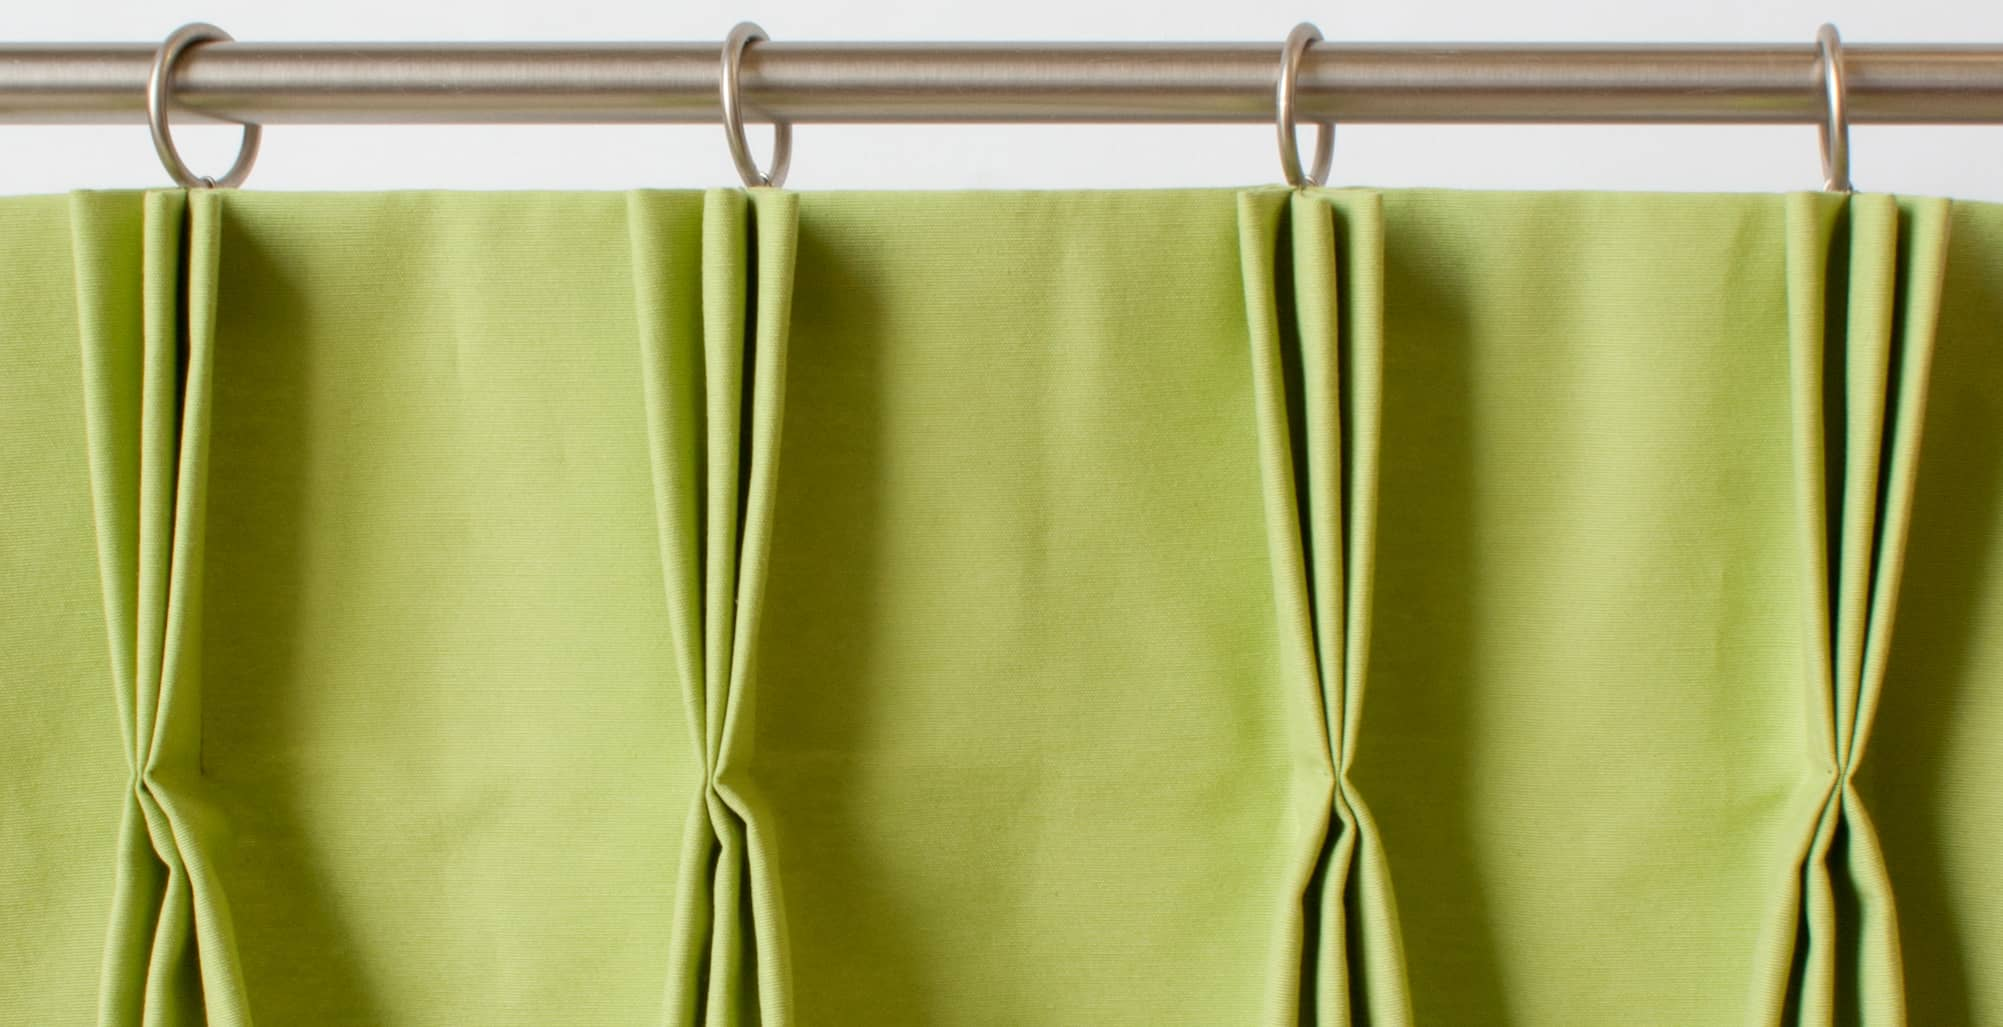 Ikea Blackout Curtain Lining Drape Curtain Hooks